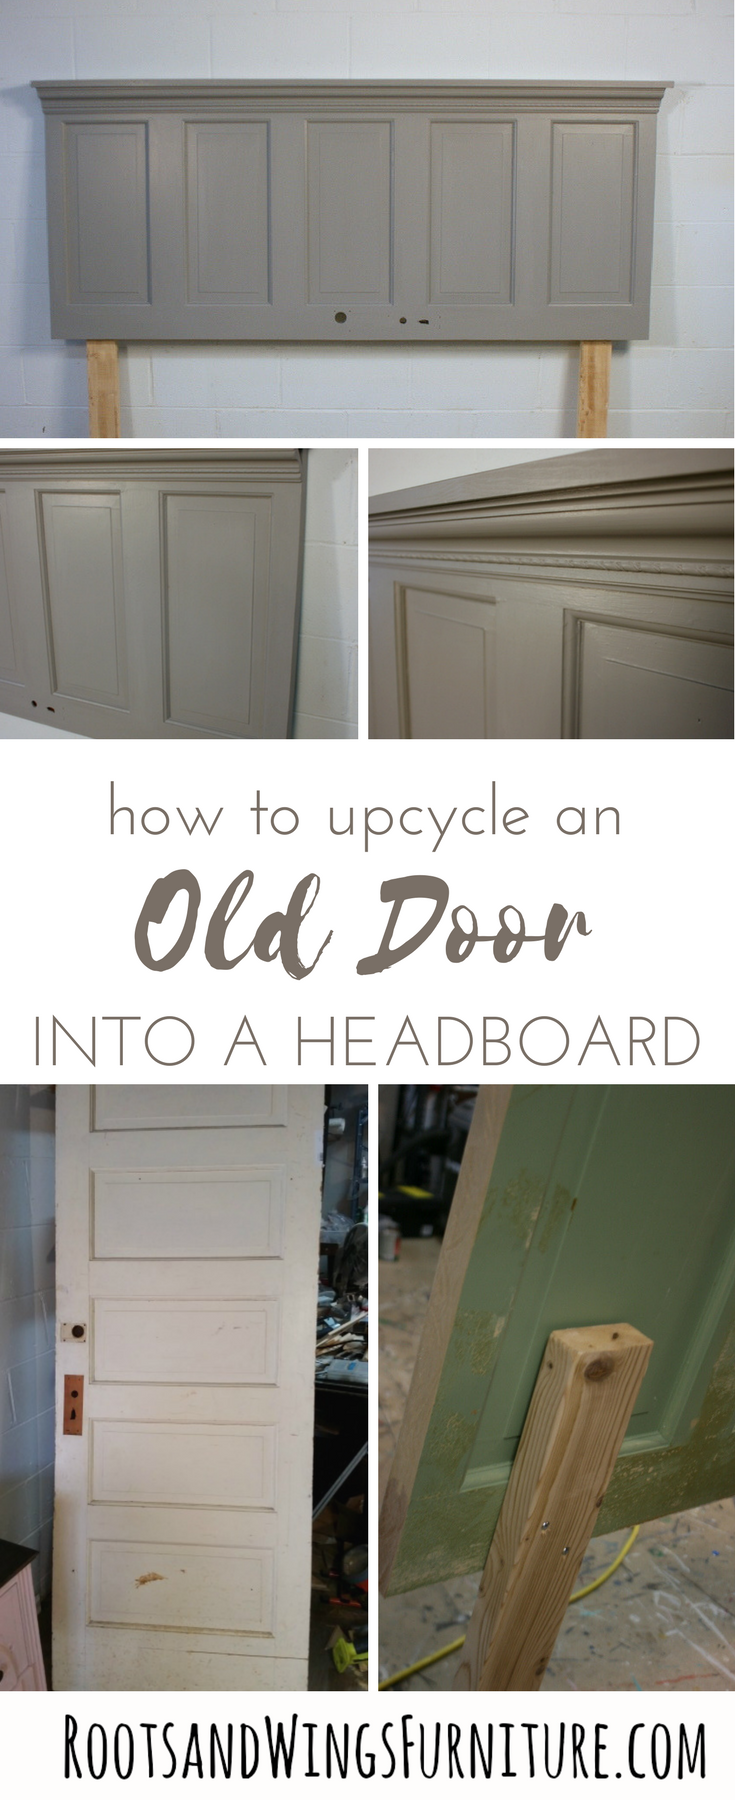 How to's : Upcycle an old door into a headboard with this easy DIY project.  Add lots of character in no time.  Tutorial by Jenni of Roots and Wings Furniture.  #rootsandwingsfurniture #door #olddoor #headboard #diy #tutorial #instructions #bedroom #bed #buildit #upcycled